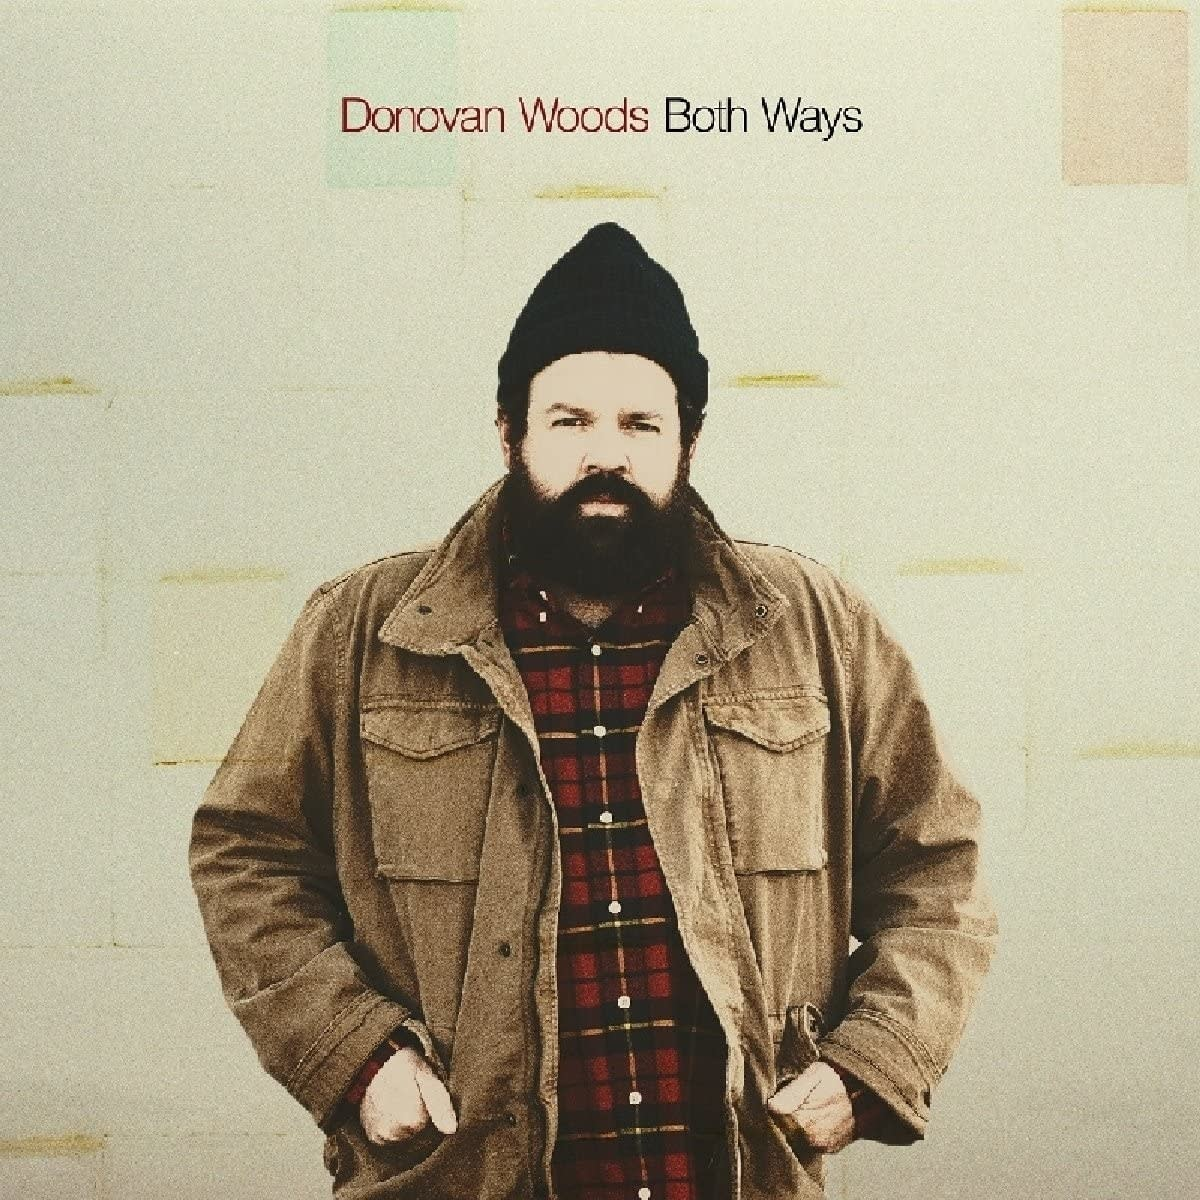 Donovan Woods - Both Ways